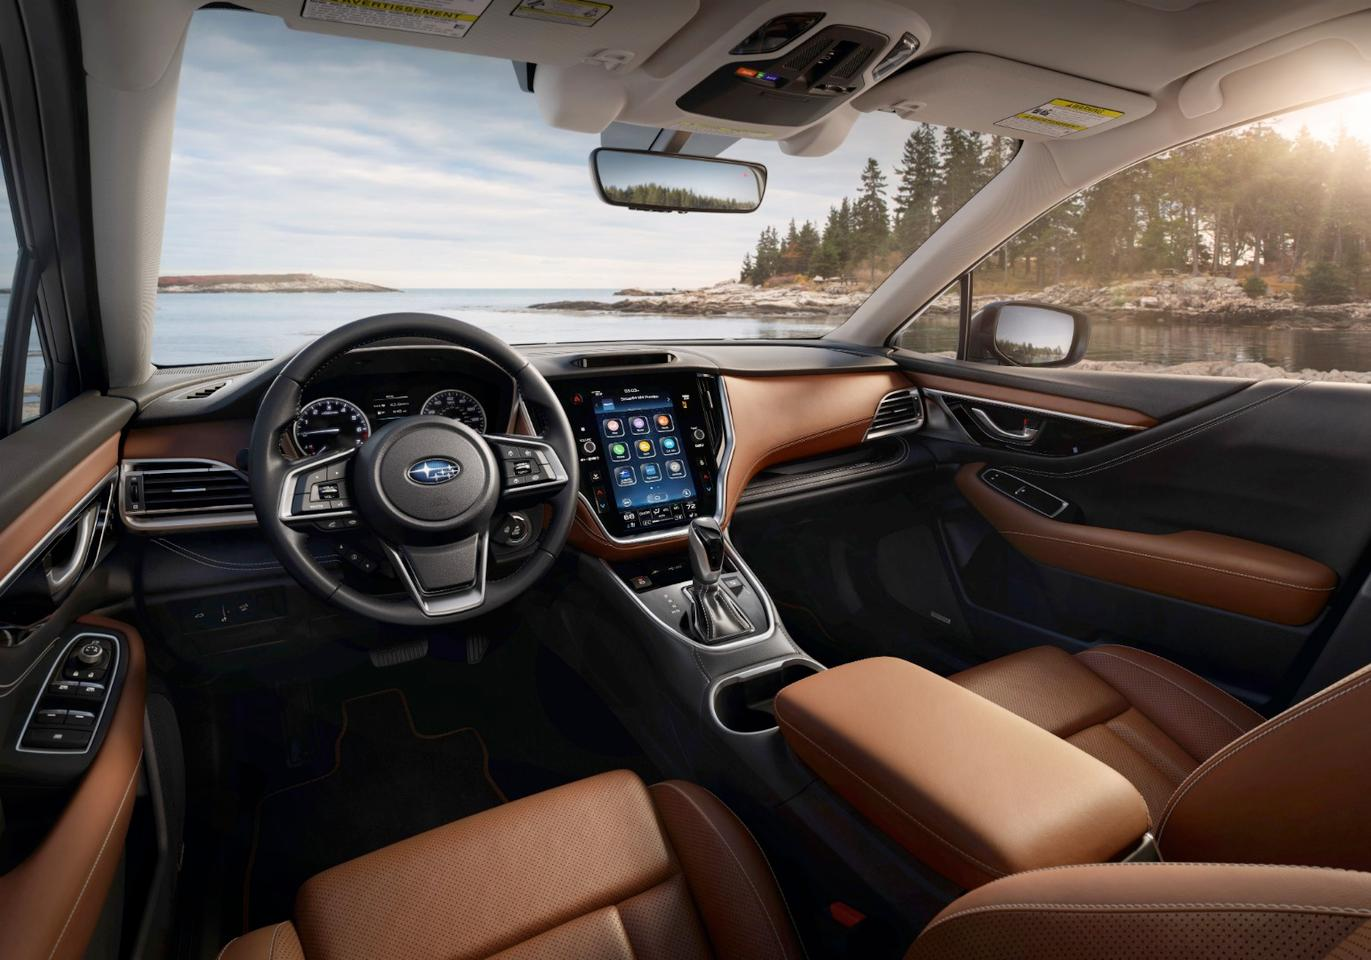 Subaru adds a new 11.6-in infotainment display standard across all models but the Base